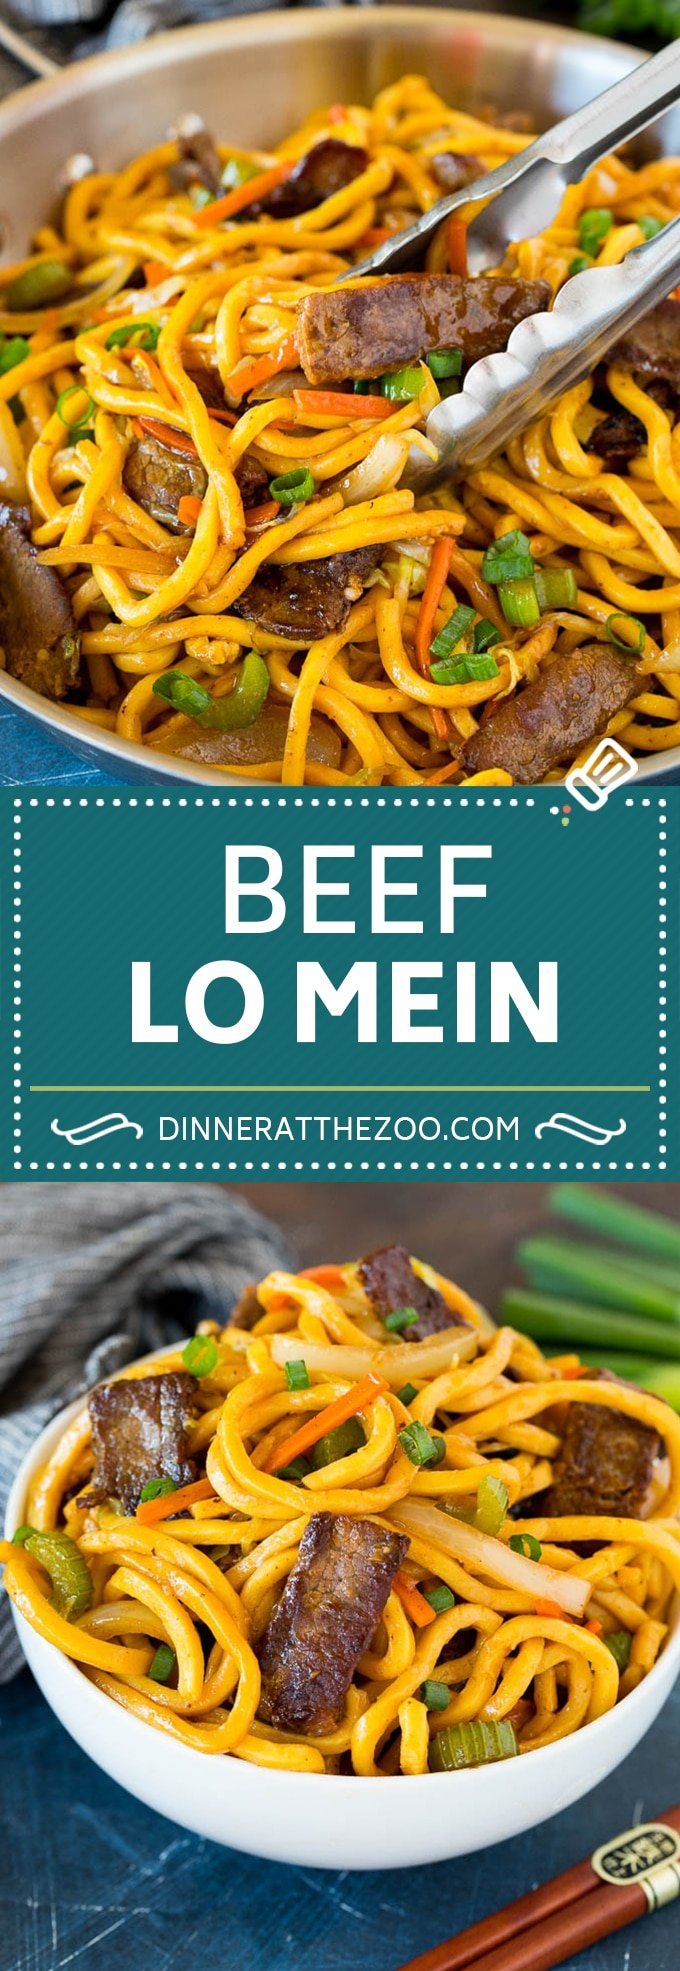 This beef lo mein is stir fried steak and vegetables tossed with egg noodles in a savory sauce.